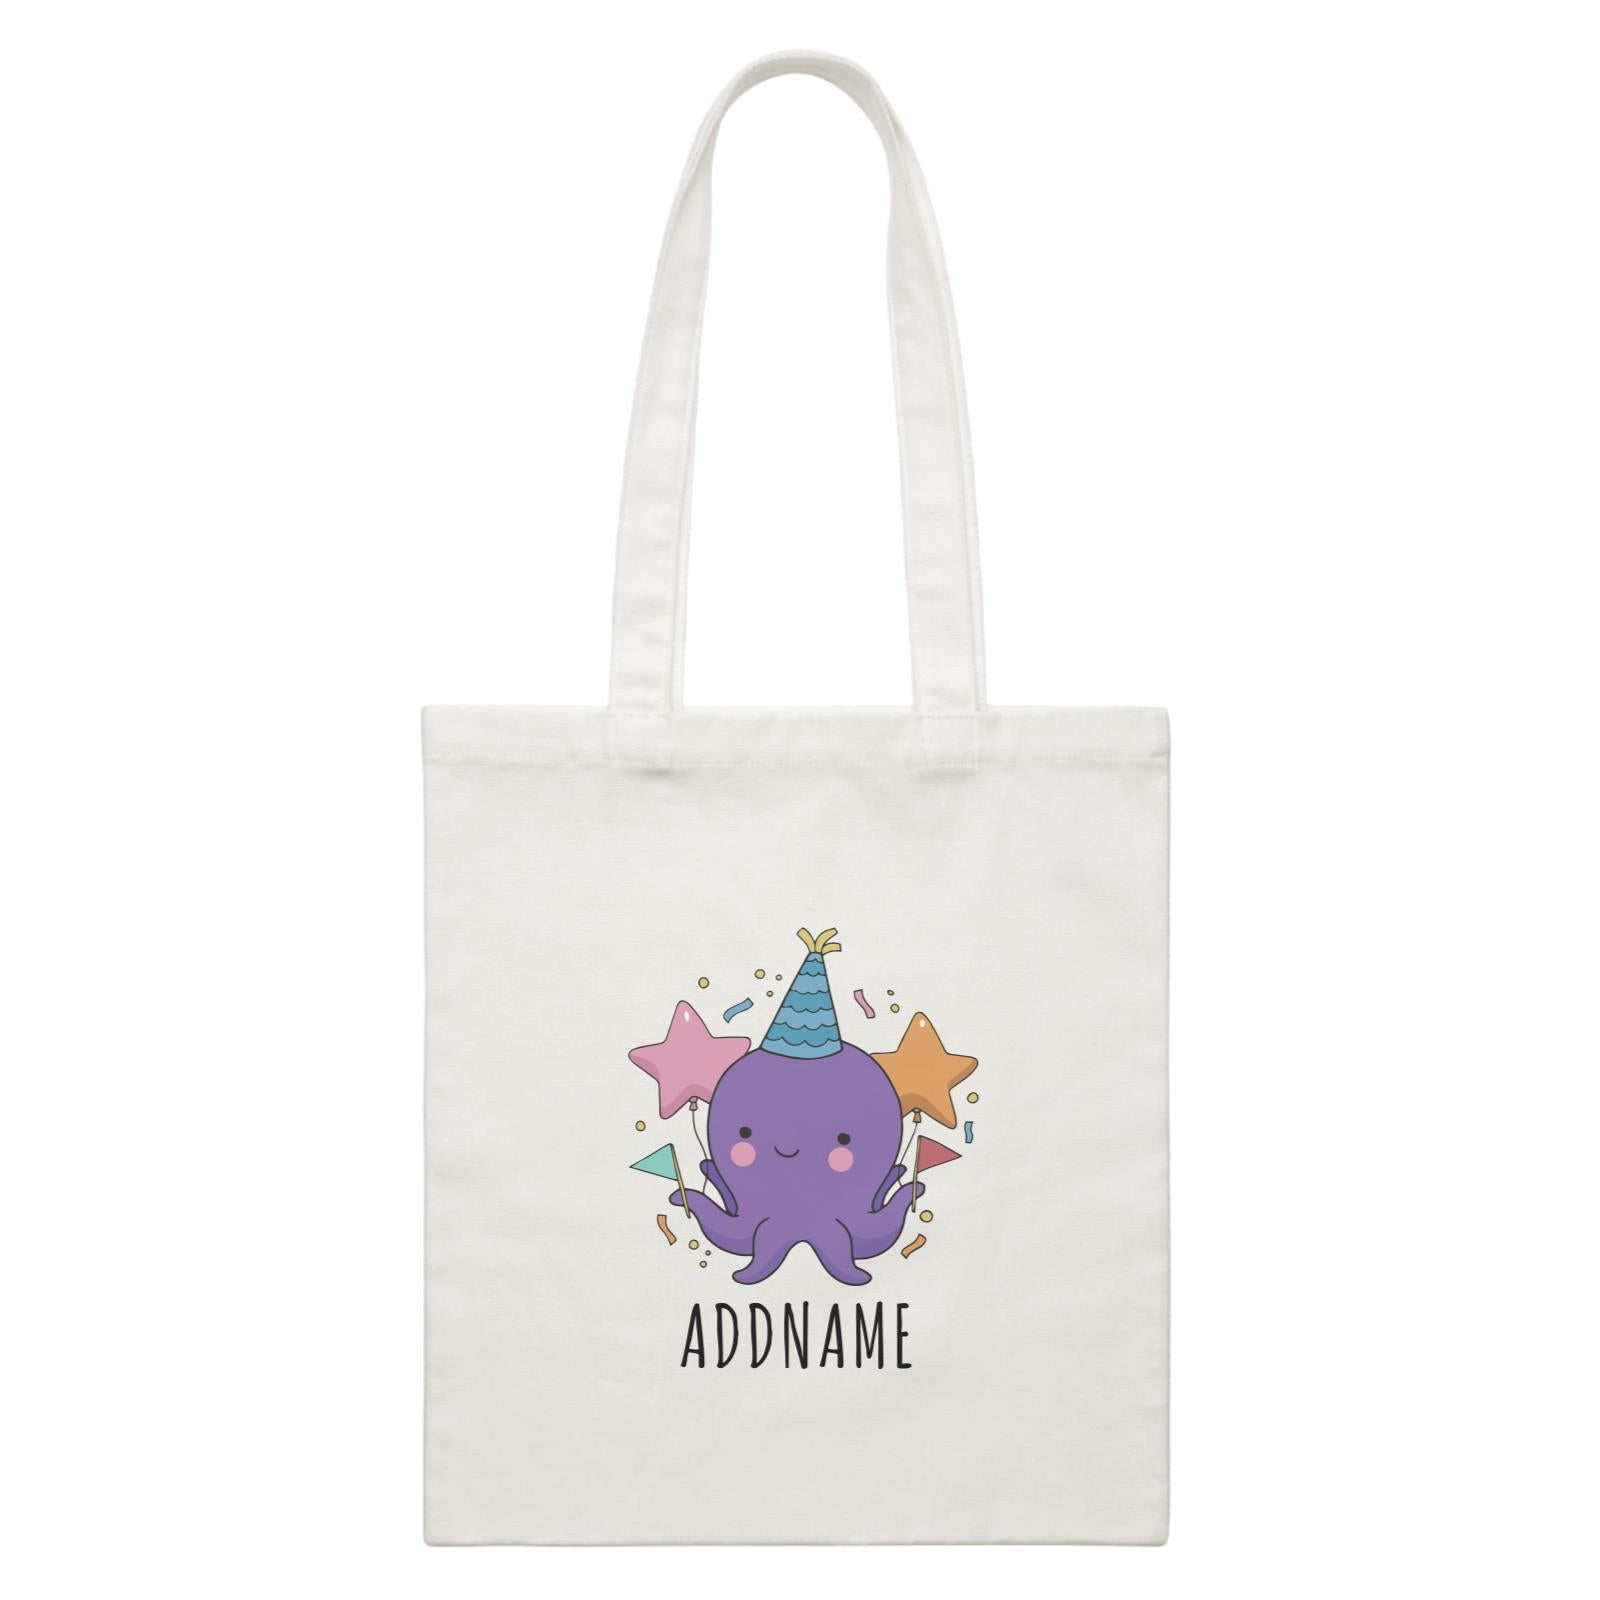 Birthday Sketch Animals Octopus with Flags Addname White Canvas Bag